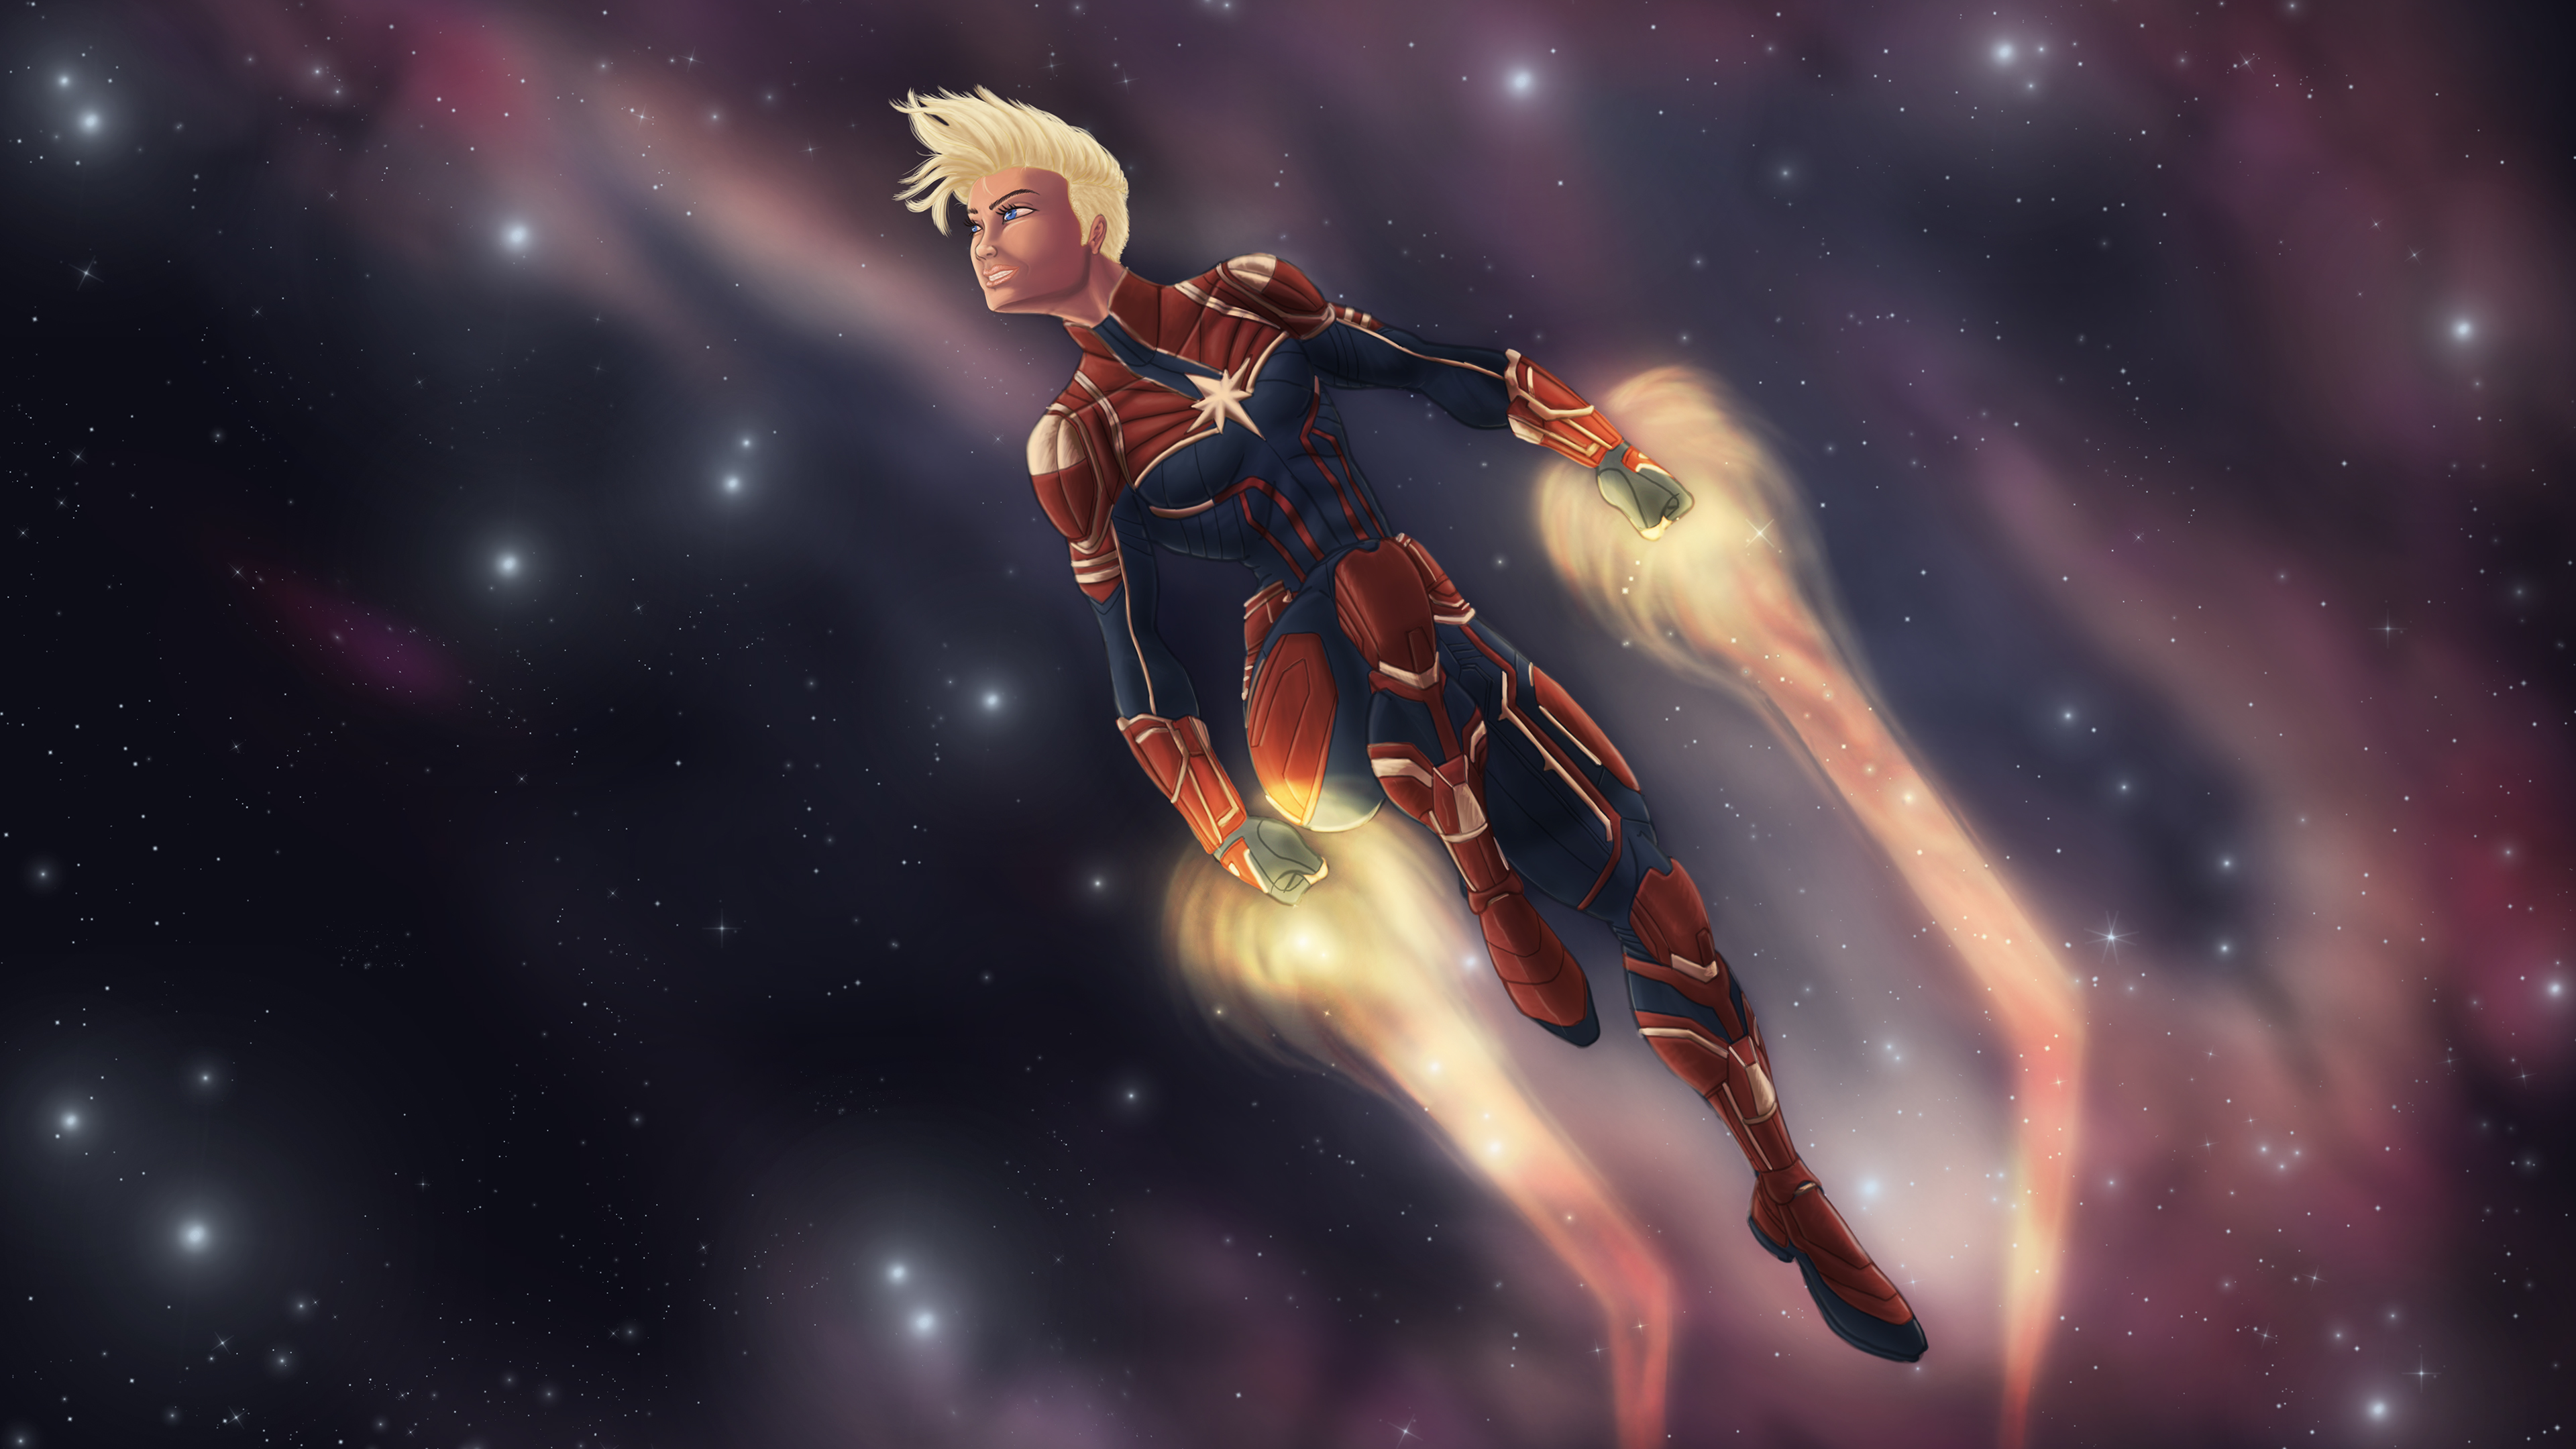 2048x2048 Anthem Ipad Air Hd 4k Wallpapers Images: 2048x2048 Captain Marvel Flying Ipad Air HD 4k Wallpapers